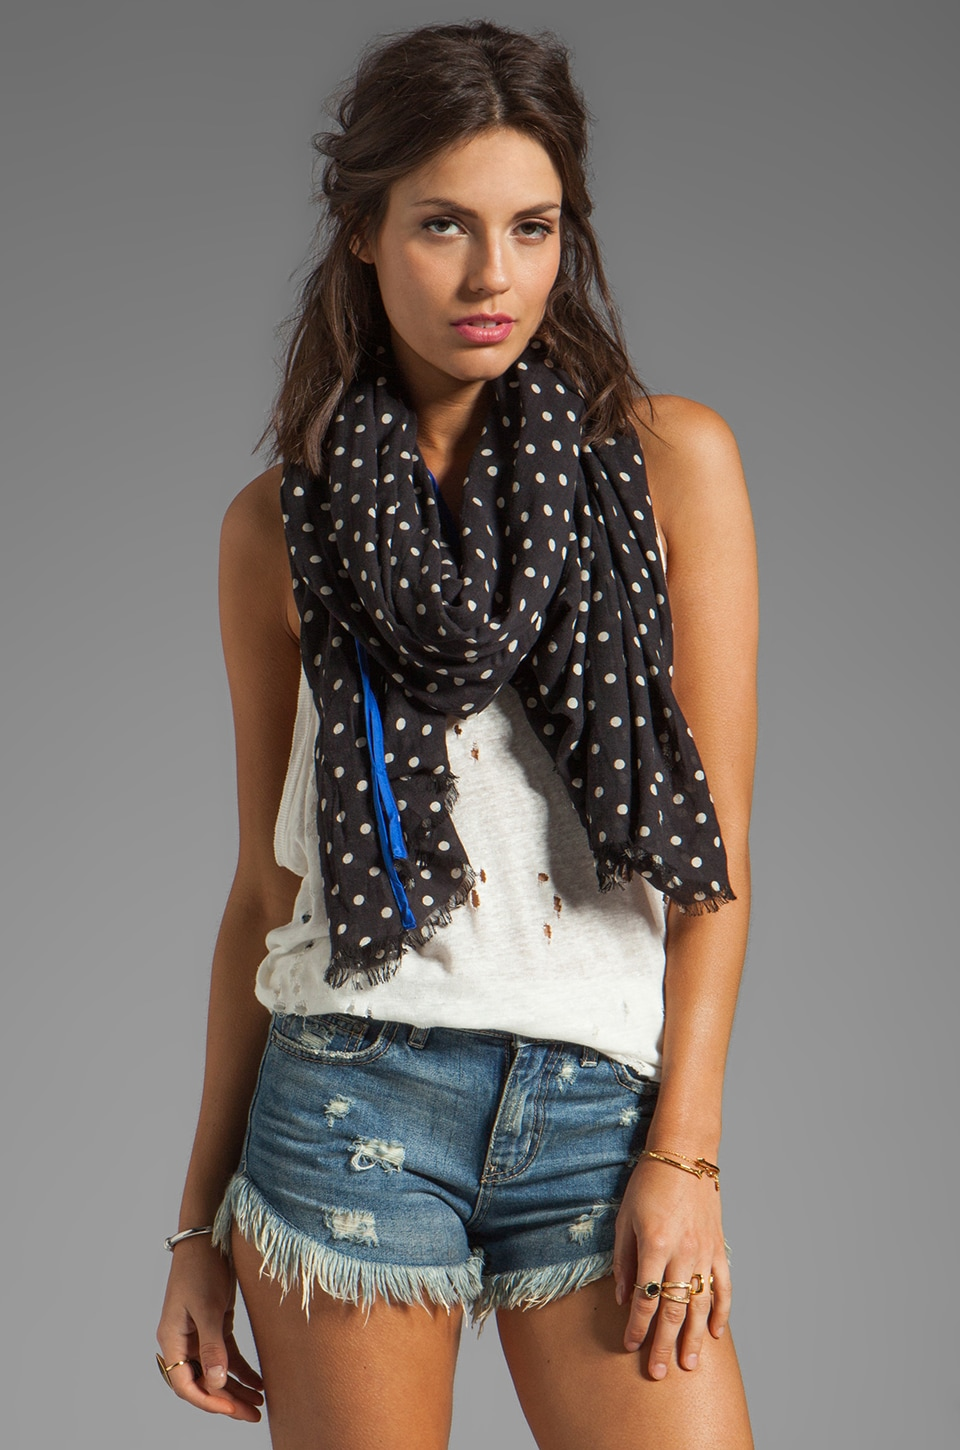 Juicy Couture Glorious Dot Scarf in Black